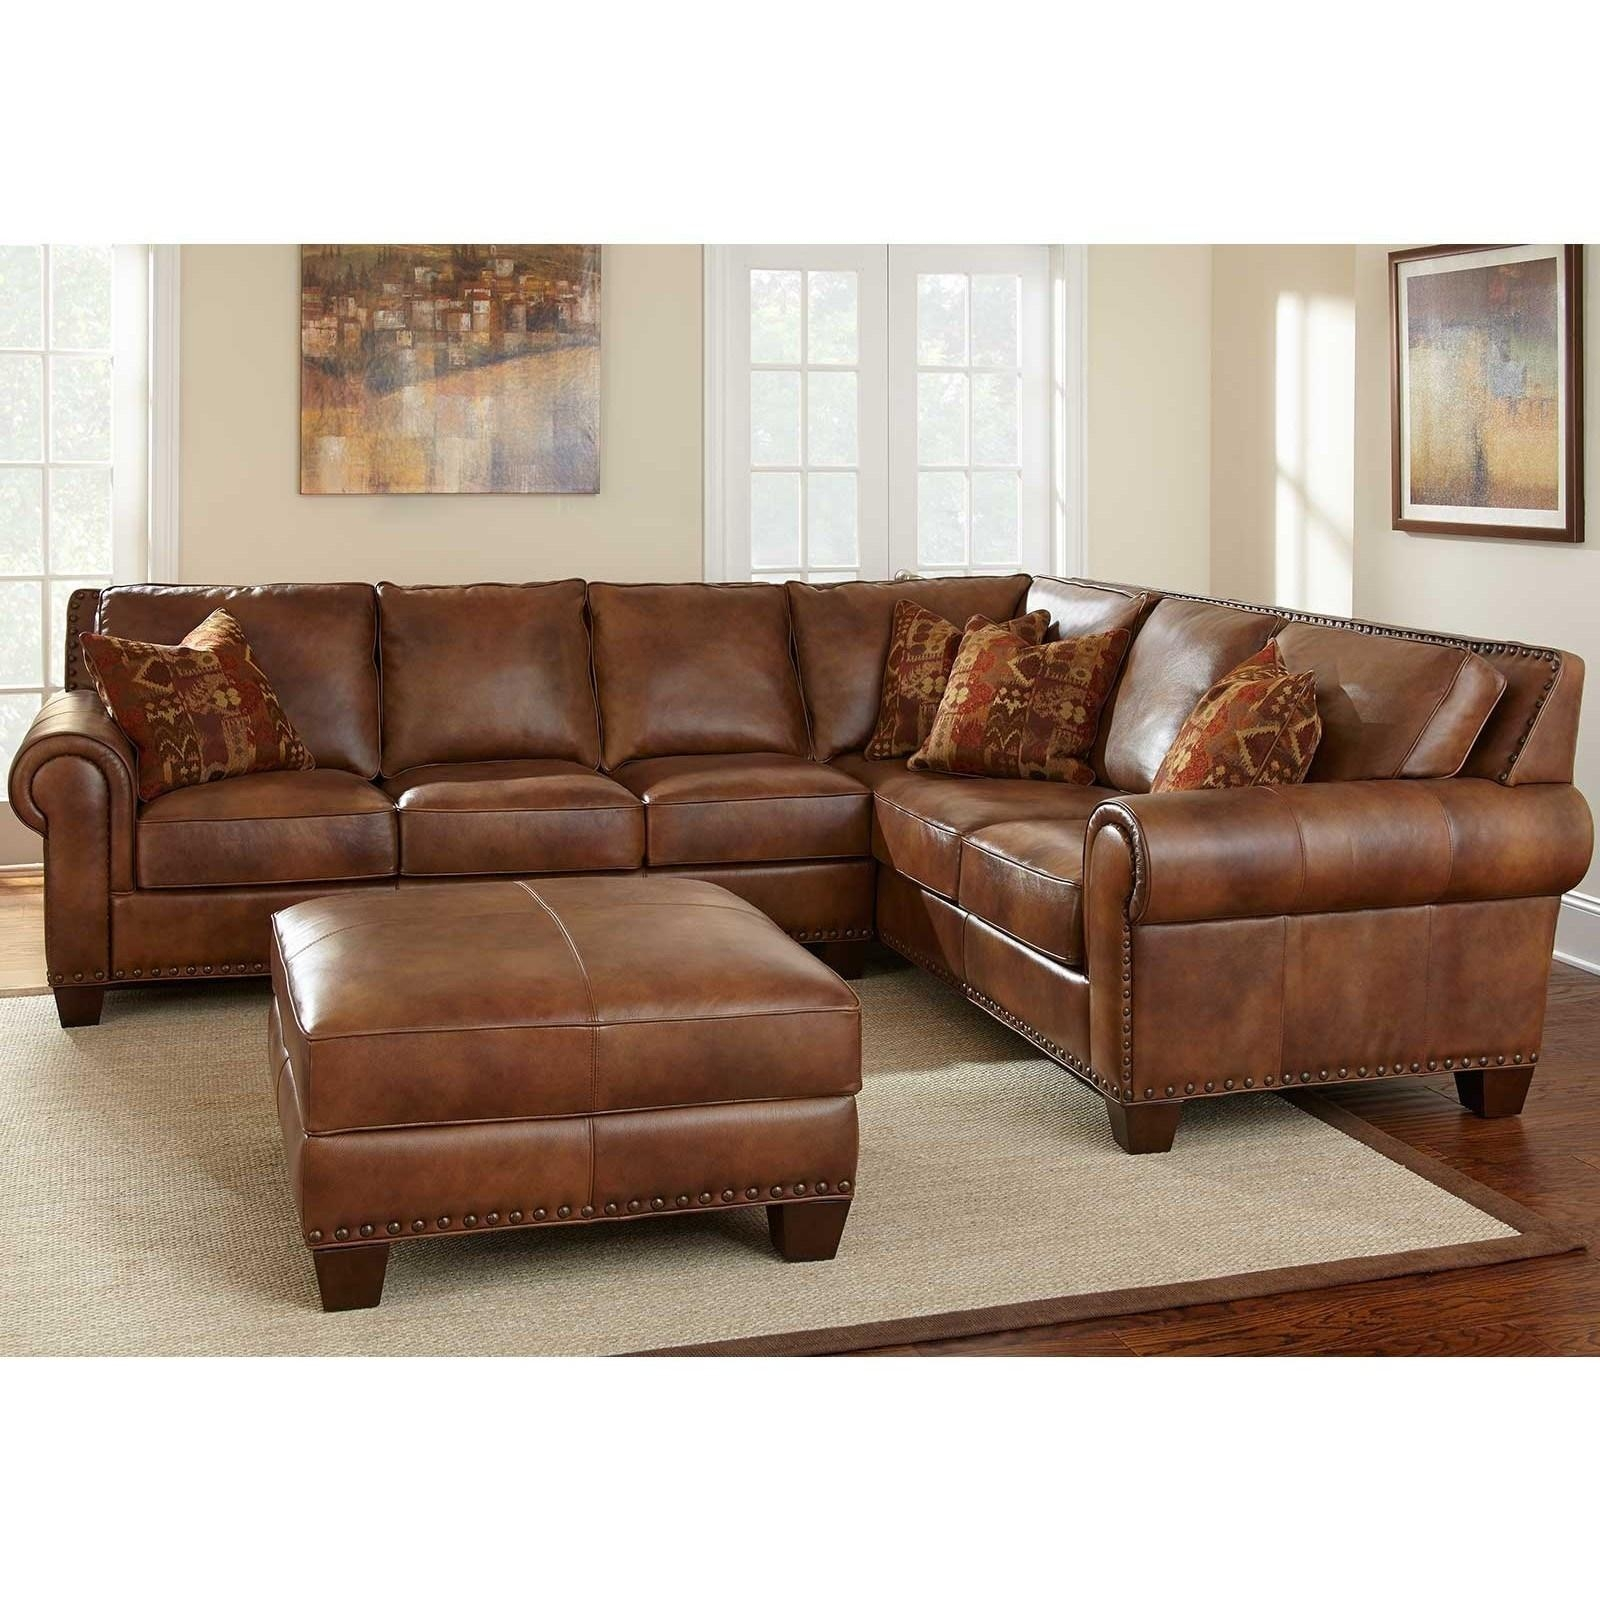 Sofa For Sale Cheap: 20 Best Collection Of Used Sectionals